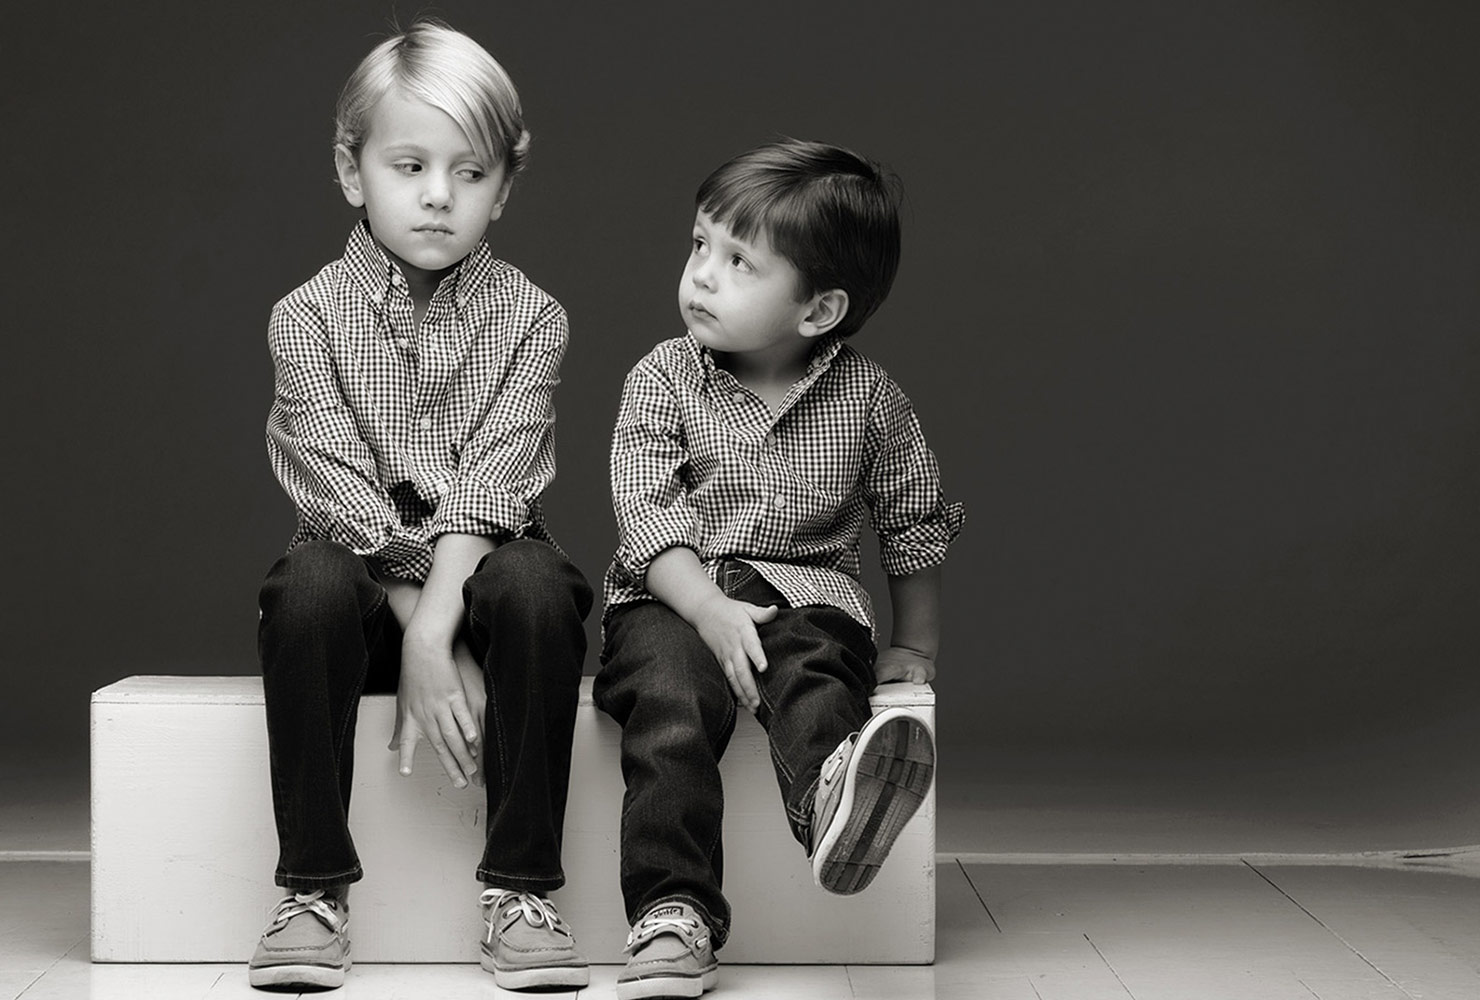 sibling photo ideas black white brothers